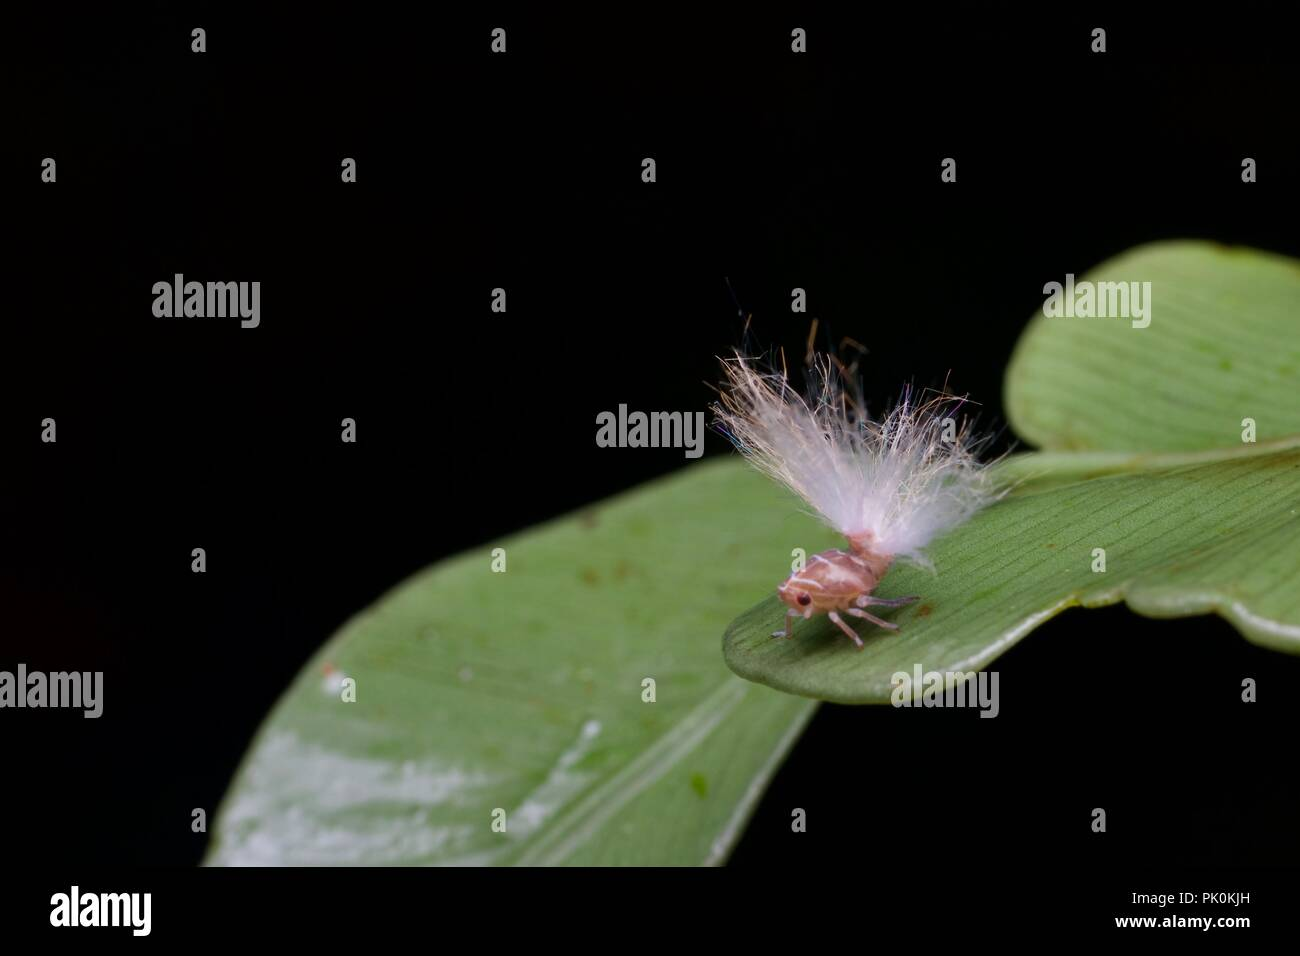 A planthopper nymph with a fluffy-looking rear end in Gunung Mulu National Park, Sarawak, East Malaysia, Borneo - Stock Image